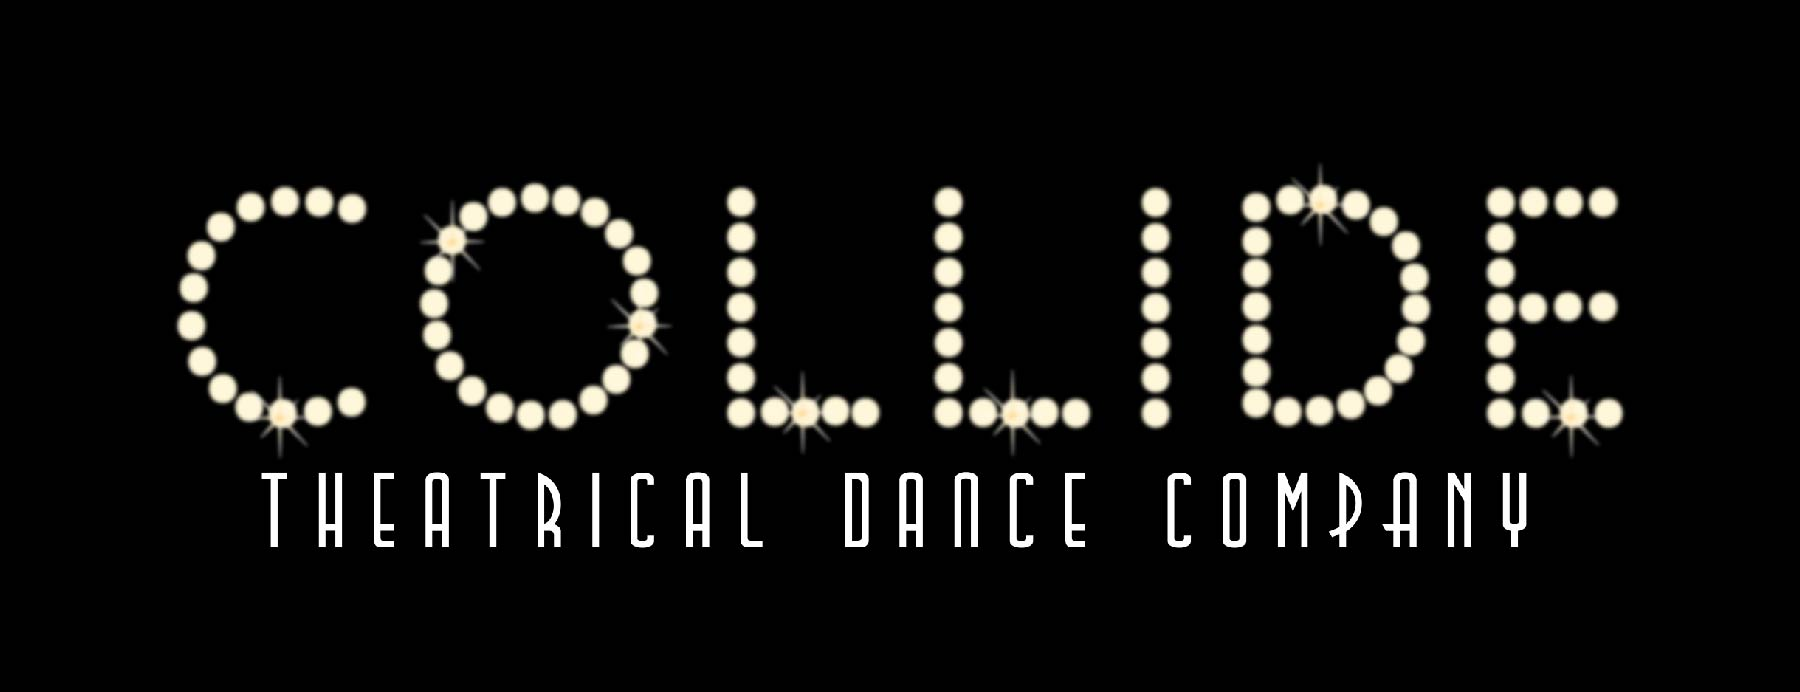 COLLIDE-LOGO_blk-bkgrnd_5in.jpg